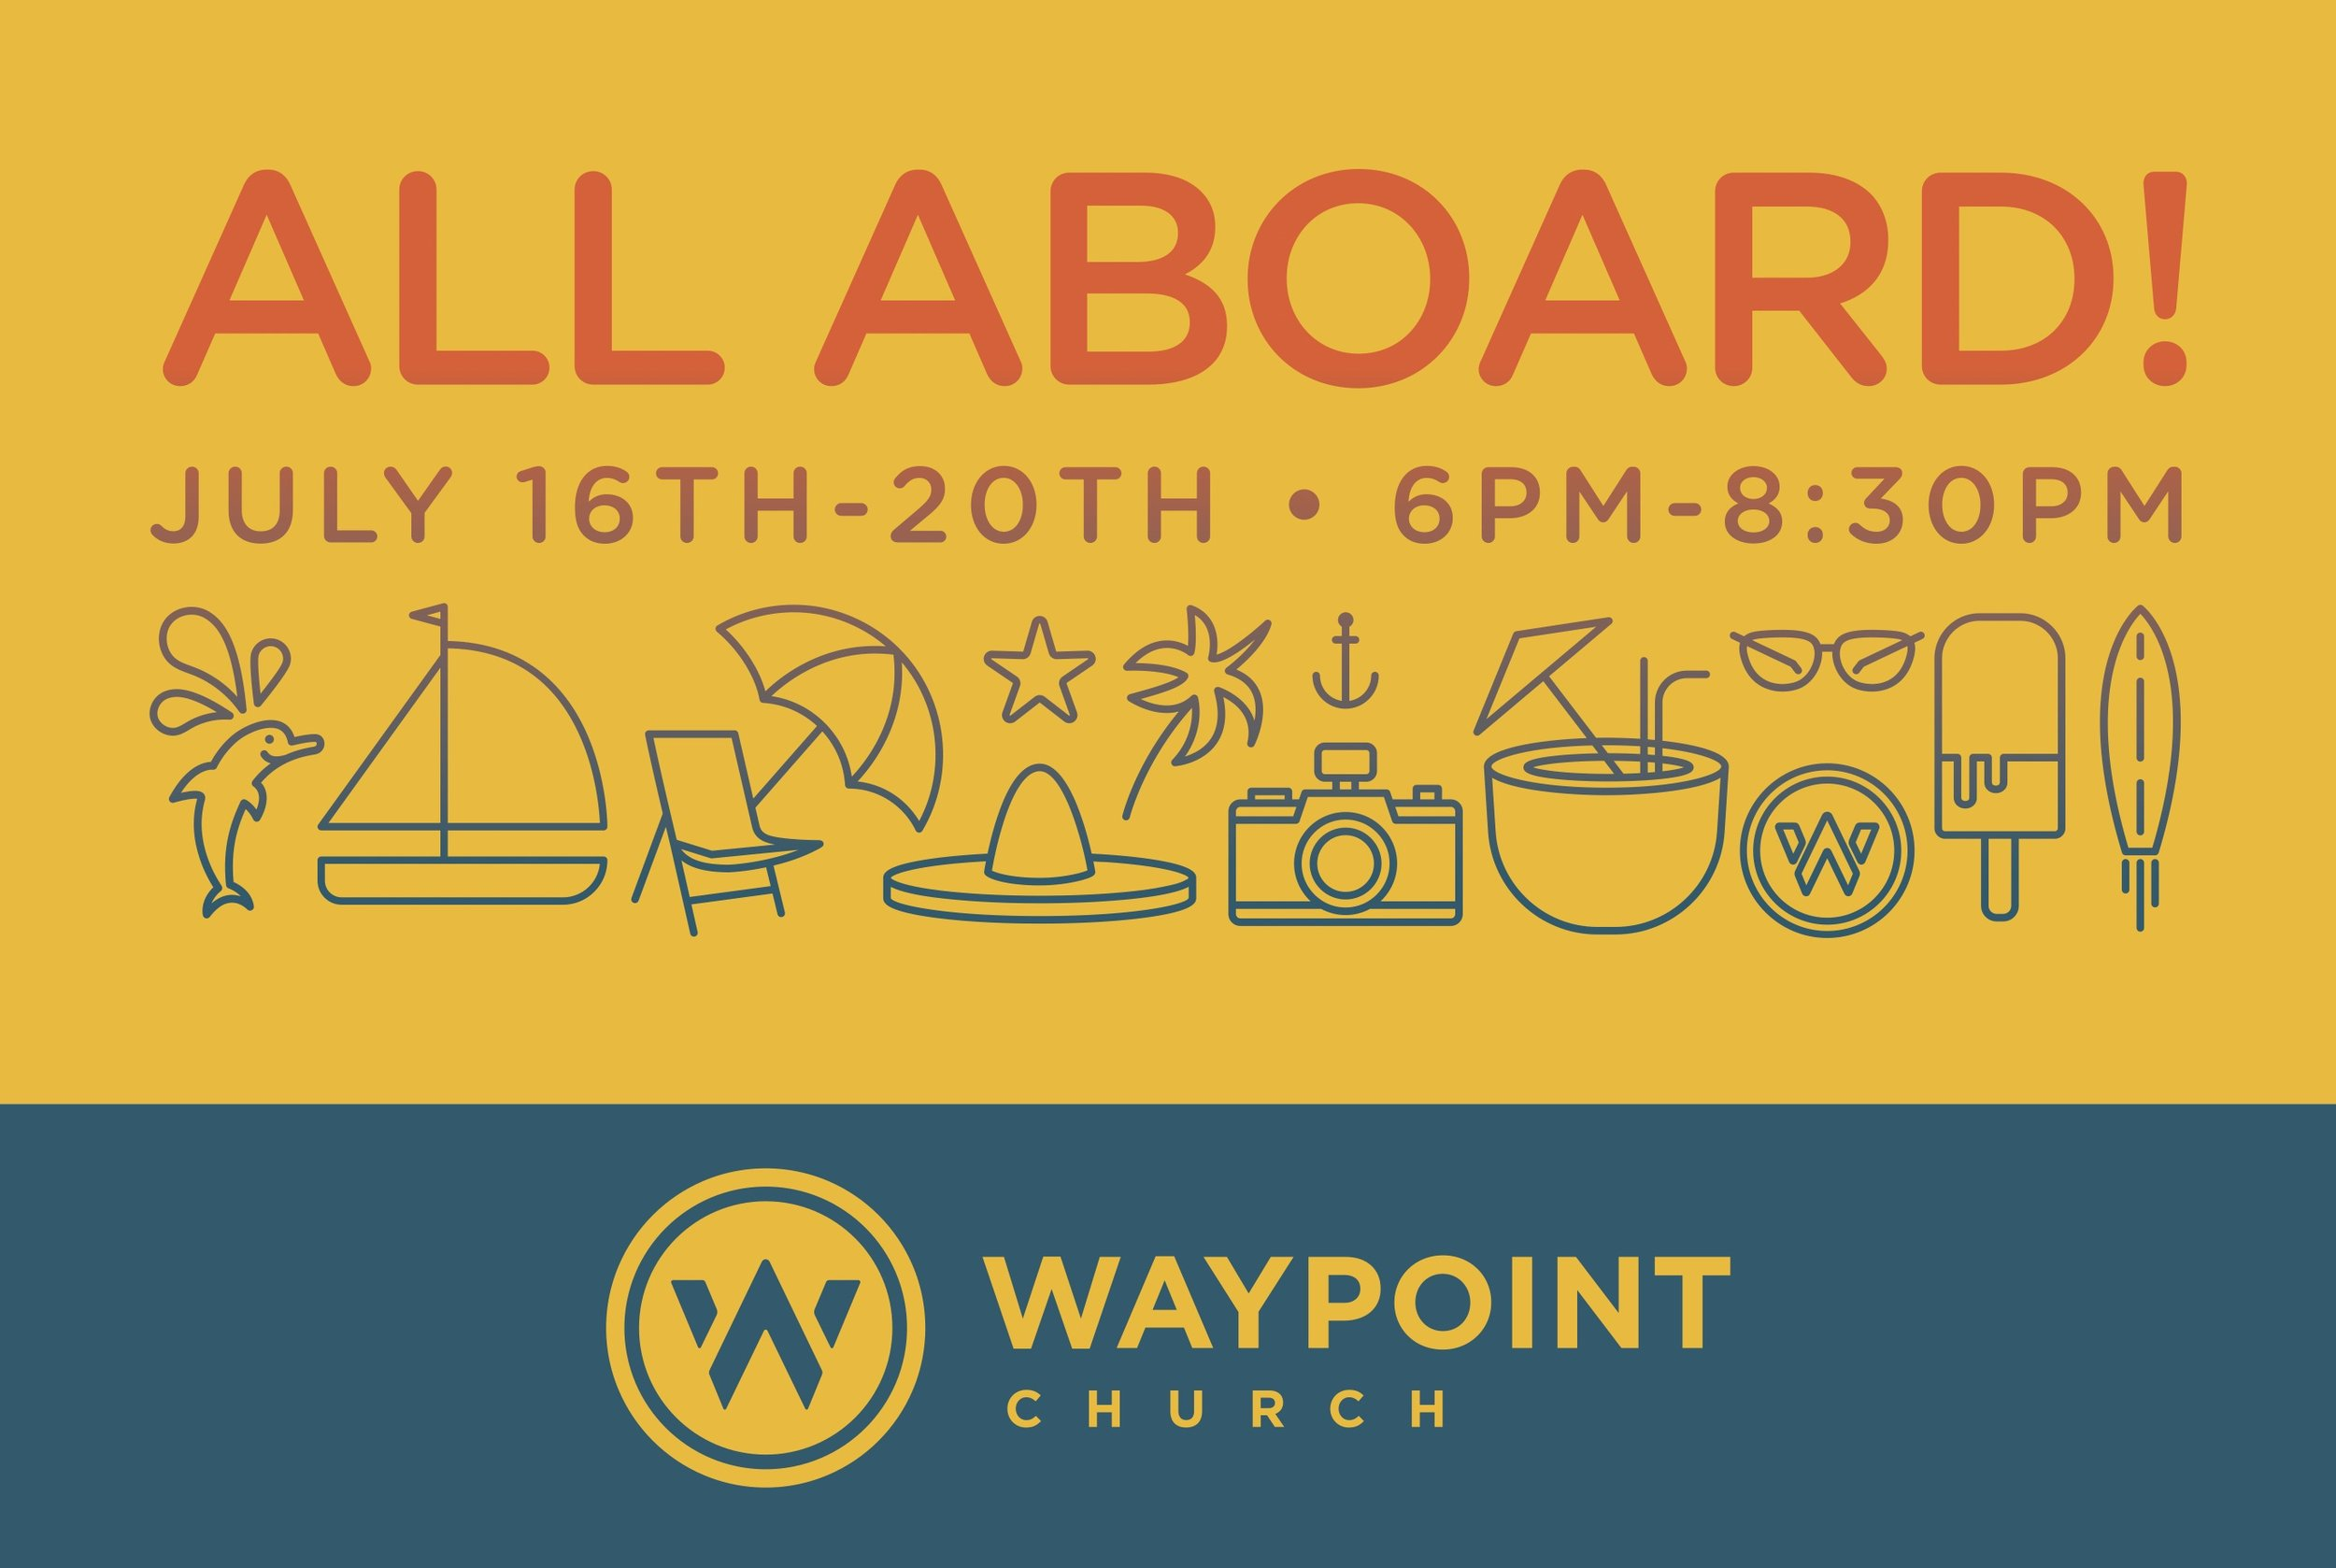 Waypoint_VBS_2018-_All_Aboard_-_yard_sign.jpg